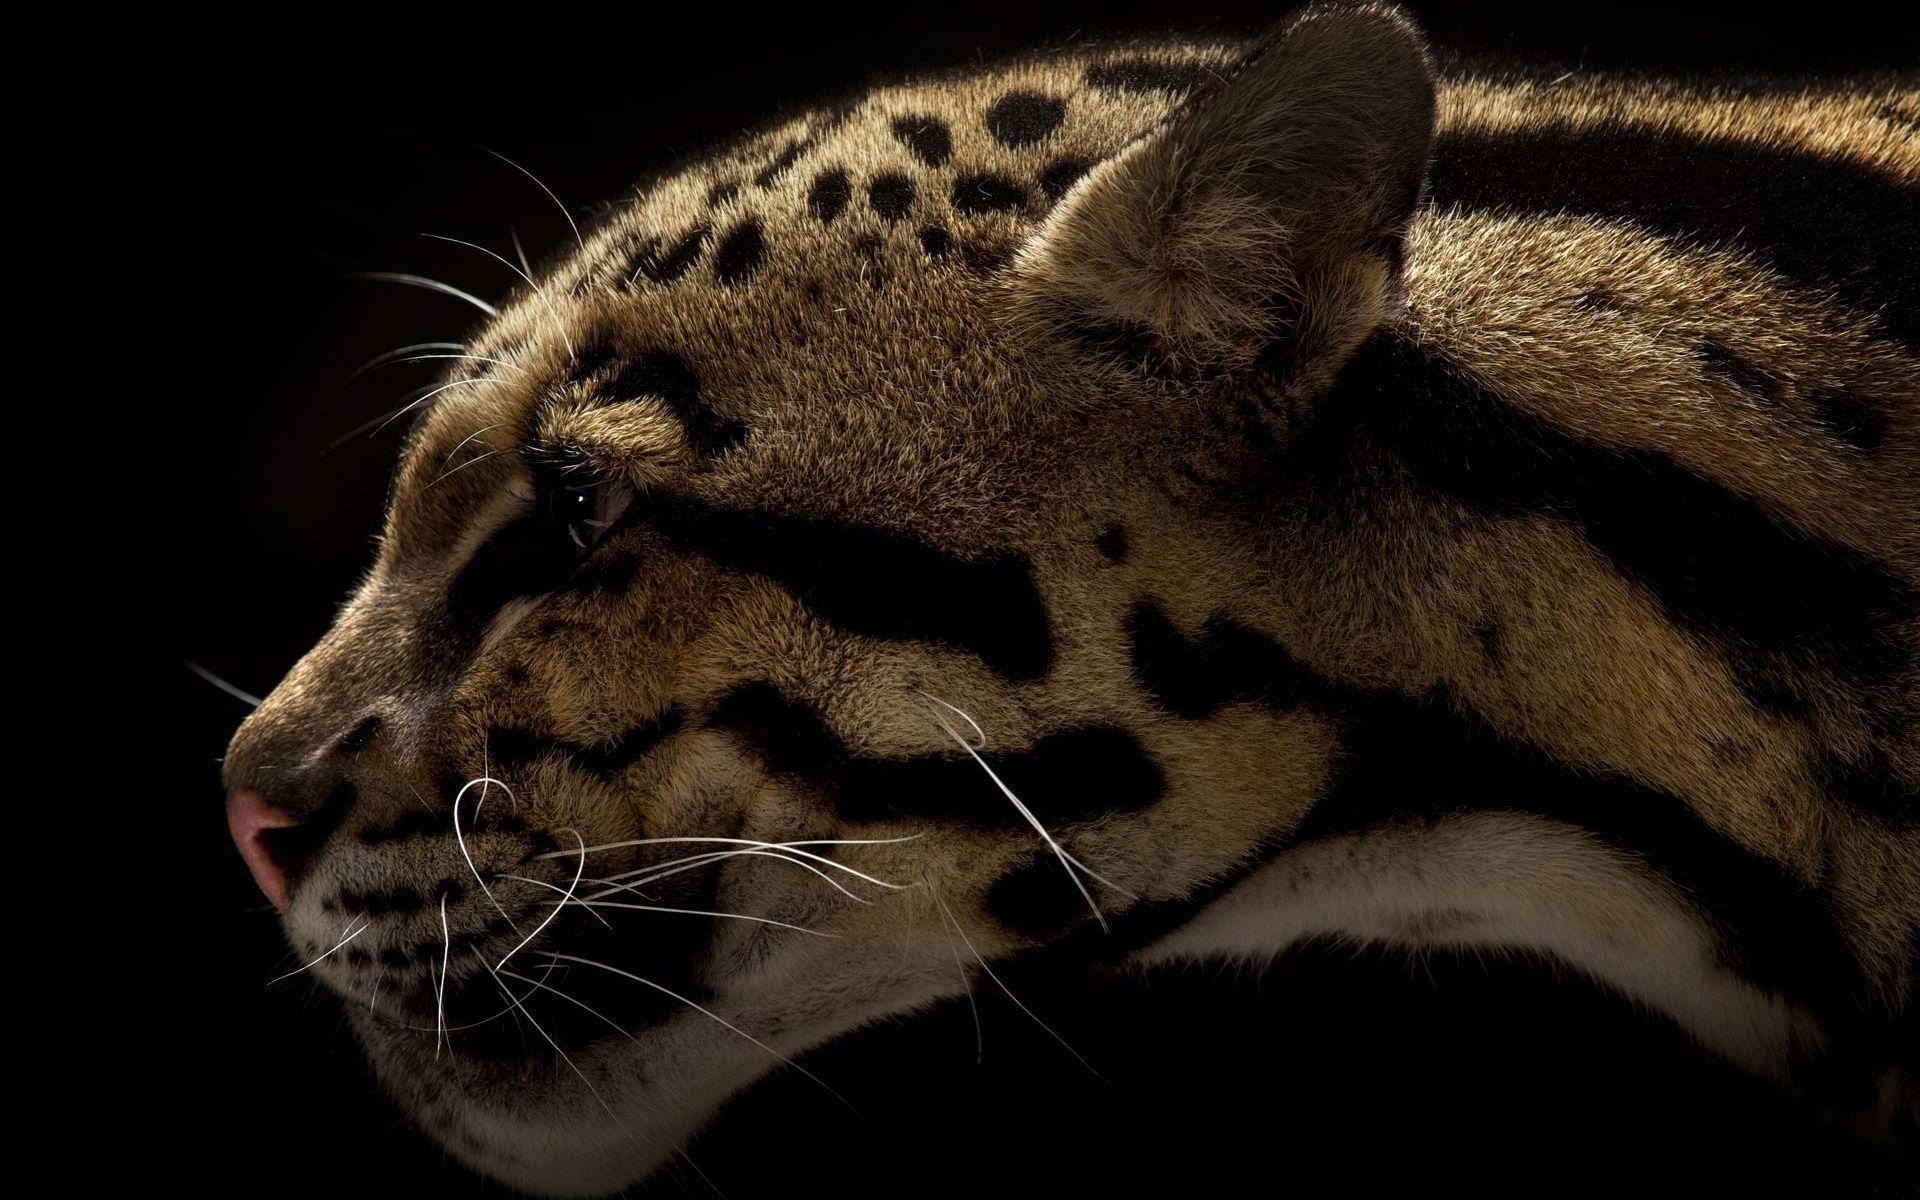 wild cat wallpapers ·①